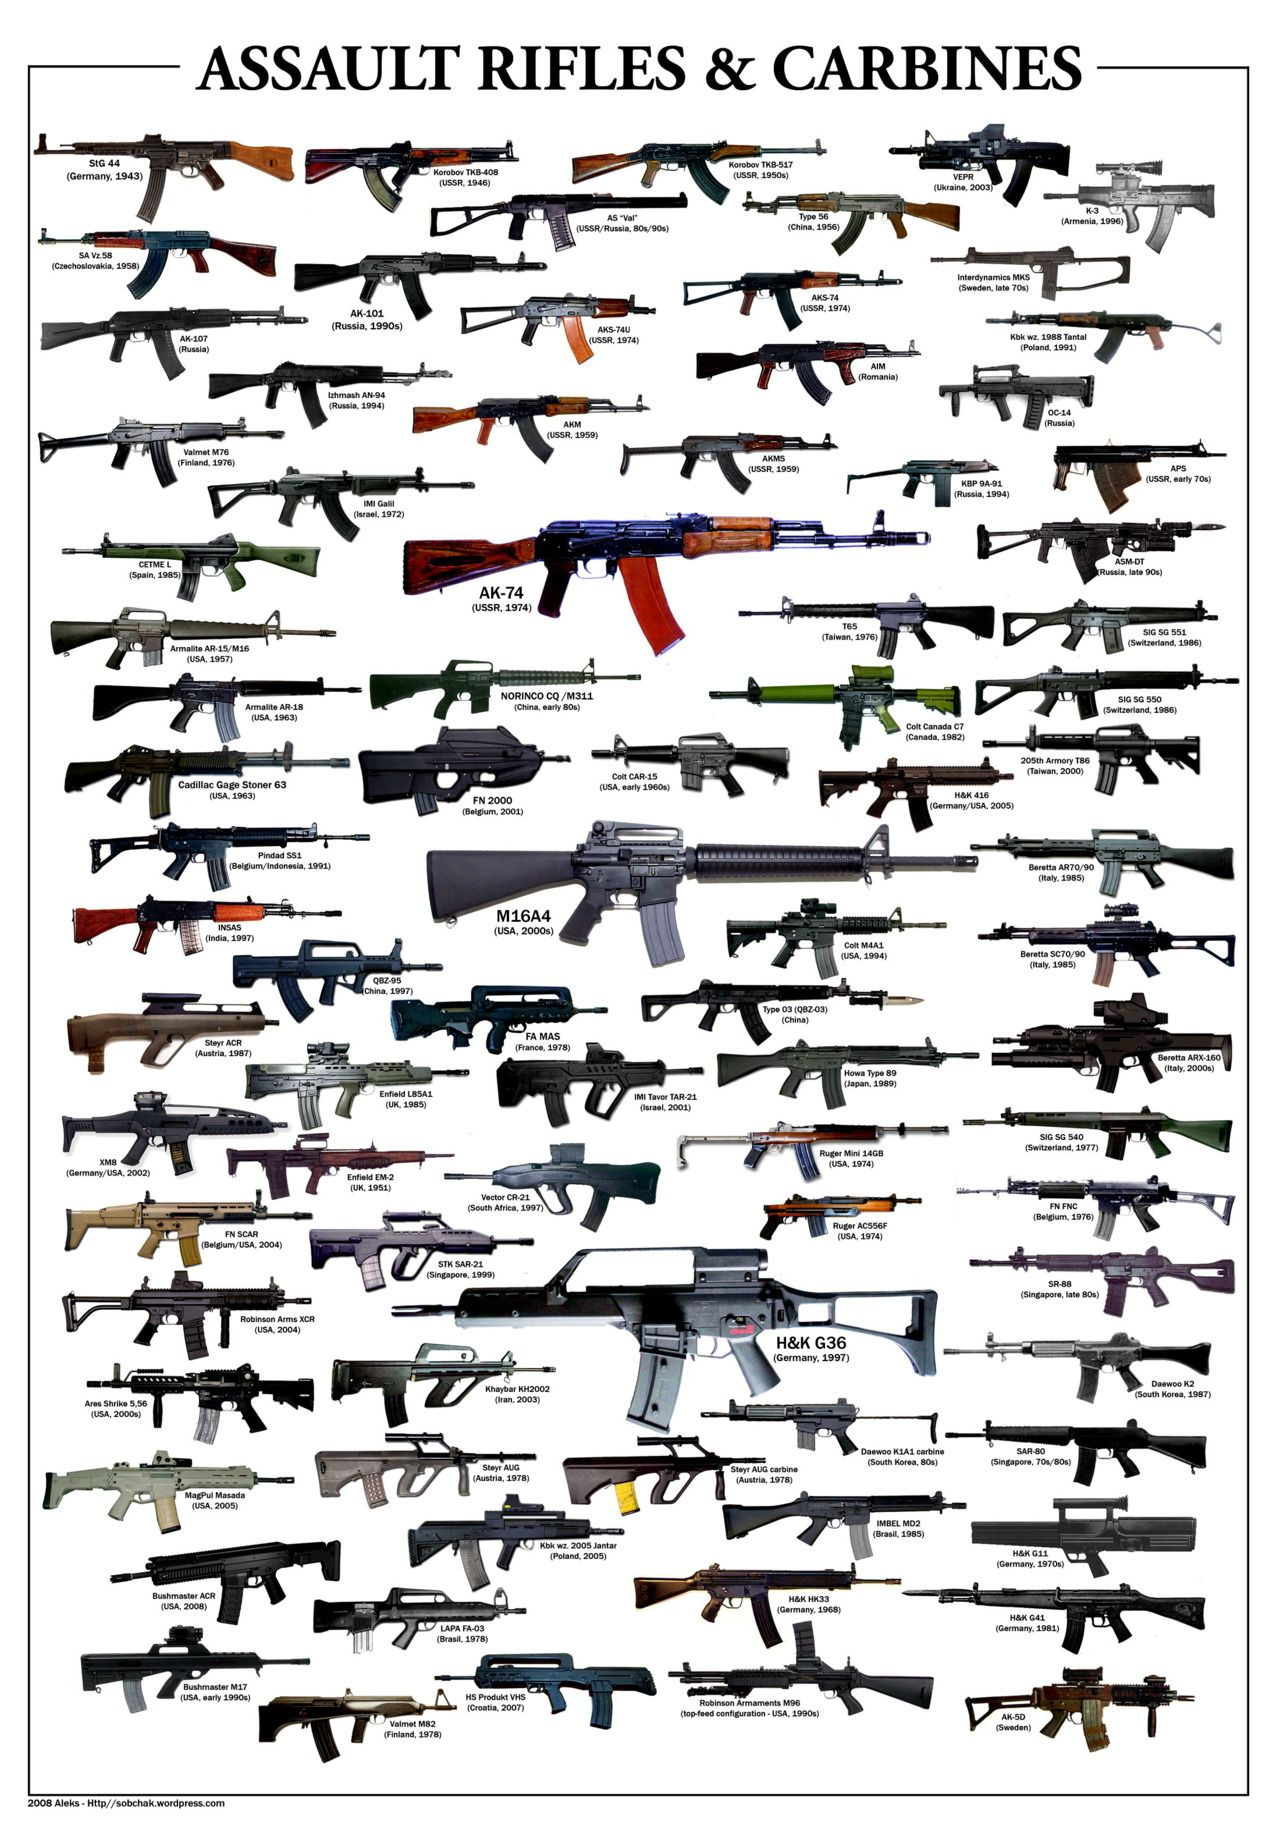 Assault Rifles Carbines Glossy Poster Picture Photo Guns Weapons Spray Tool Work Bench Part Diagram Mosin Nagant Rifle Gun Mat Ebay Loading That Magazine Is A Pain Get Your Speedloader Today Http